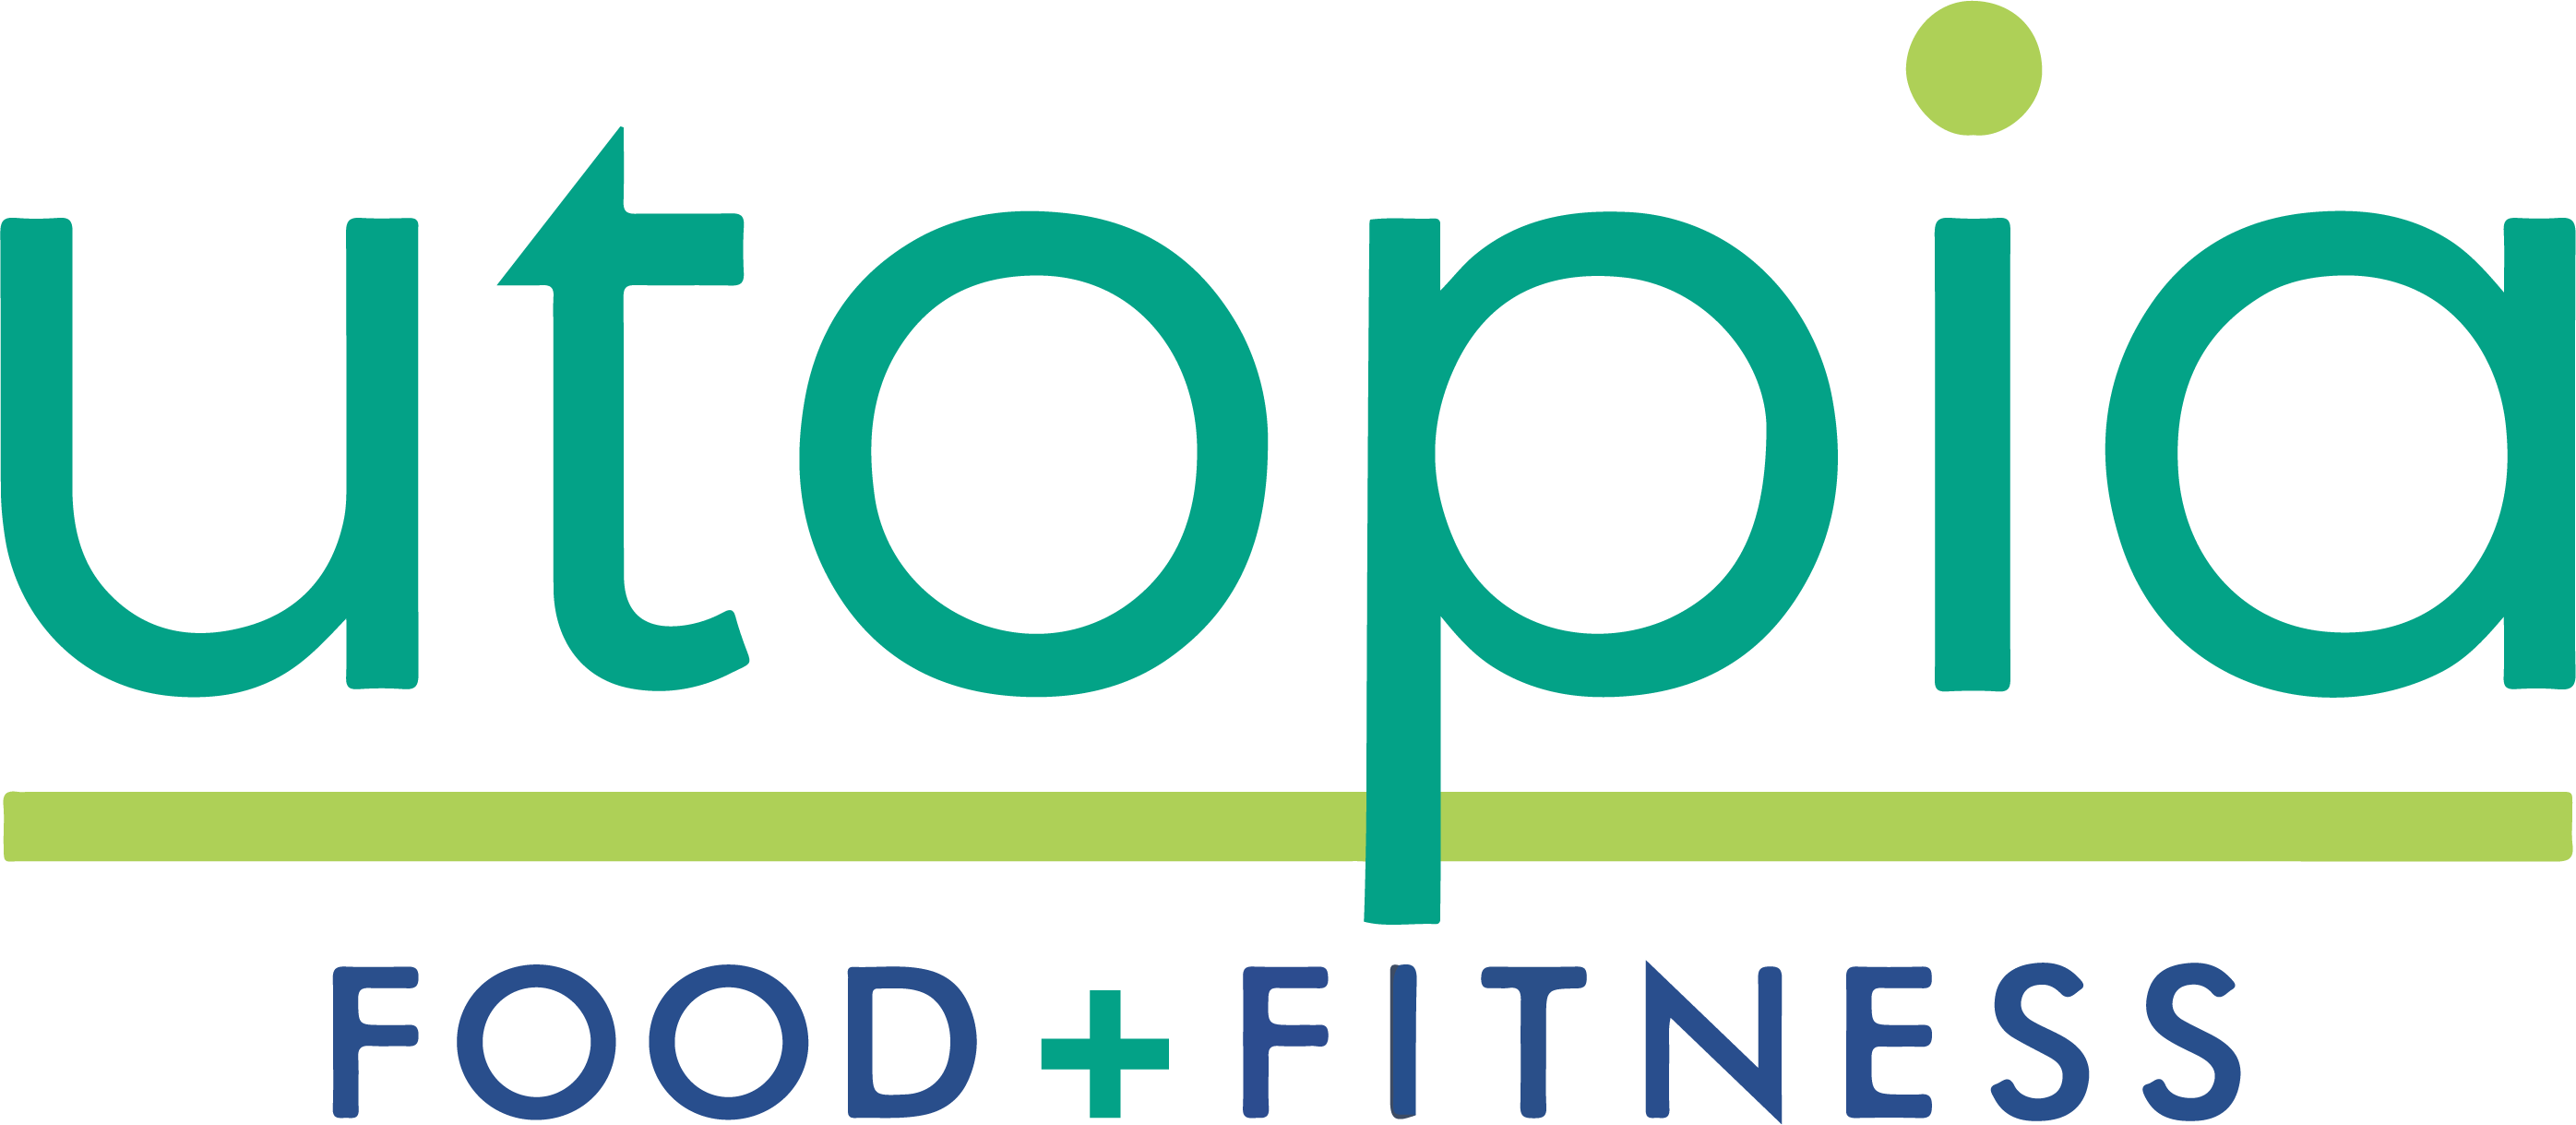 Utopia Food + Fitness - Southlake Mobile Logo